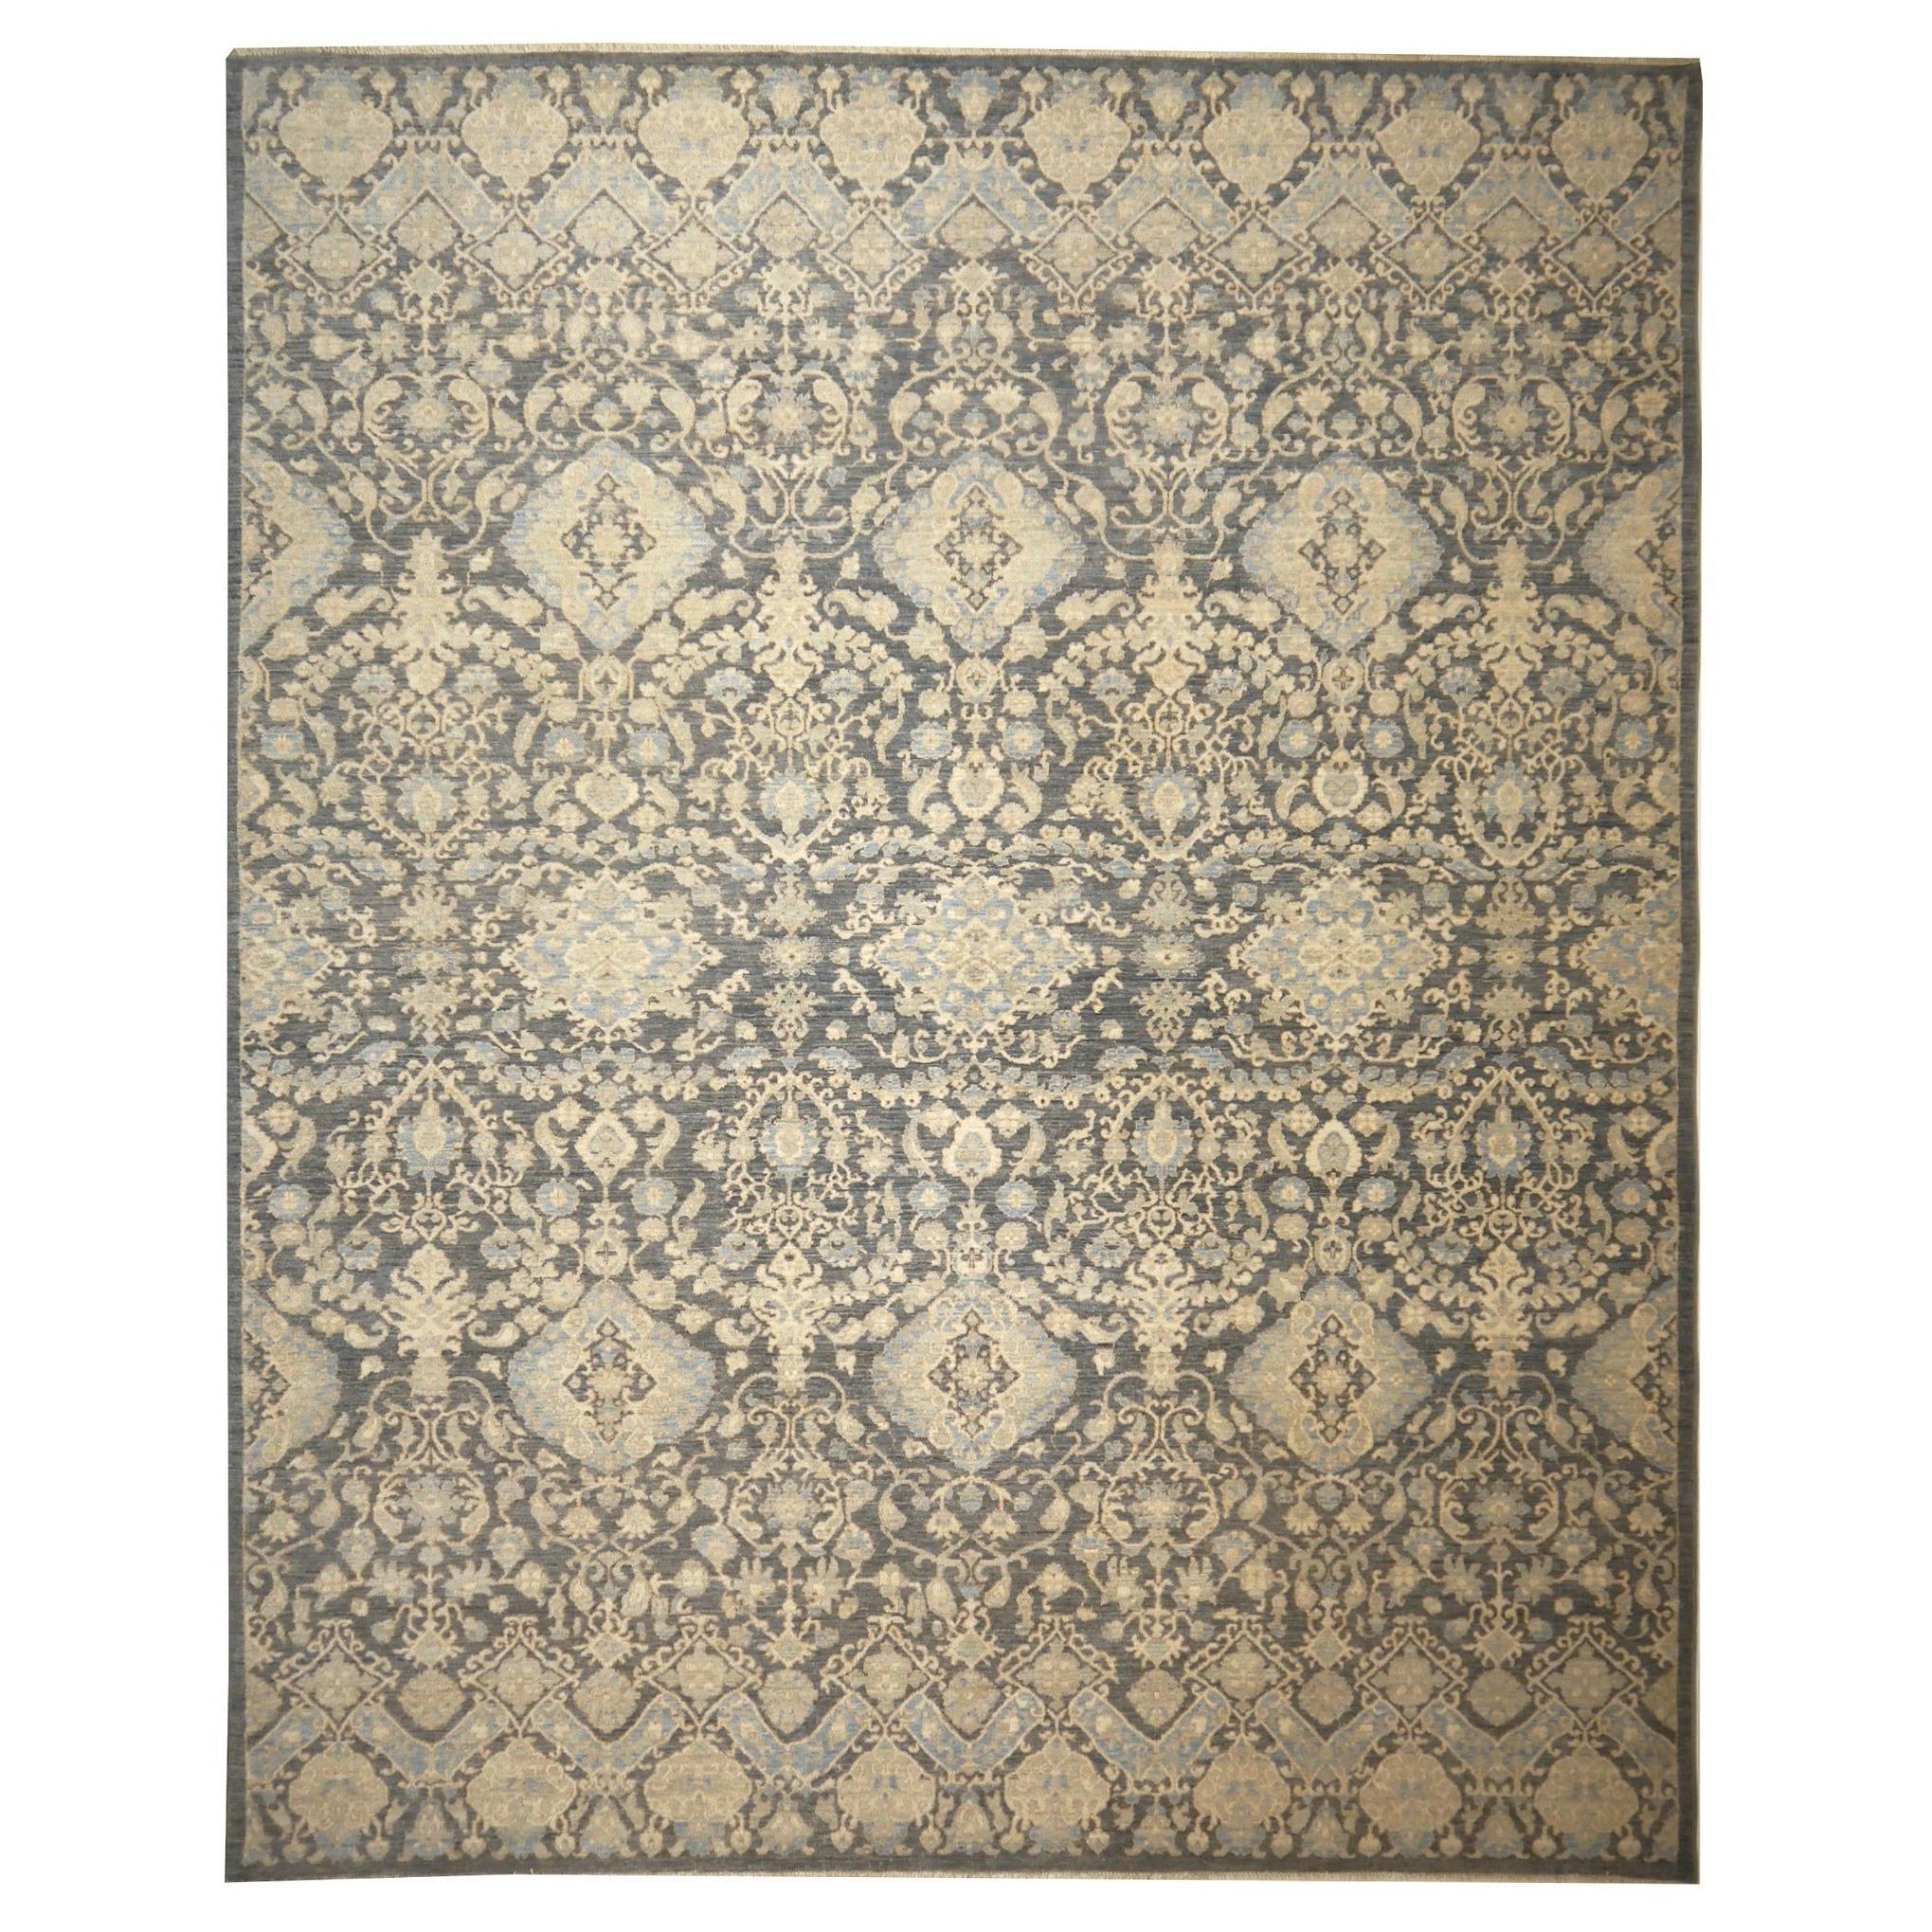 New And Custom Central Asian Rugs